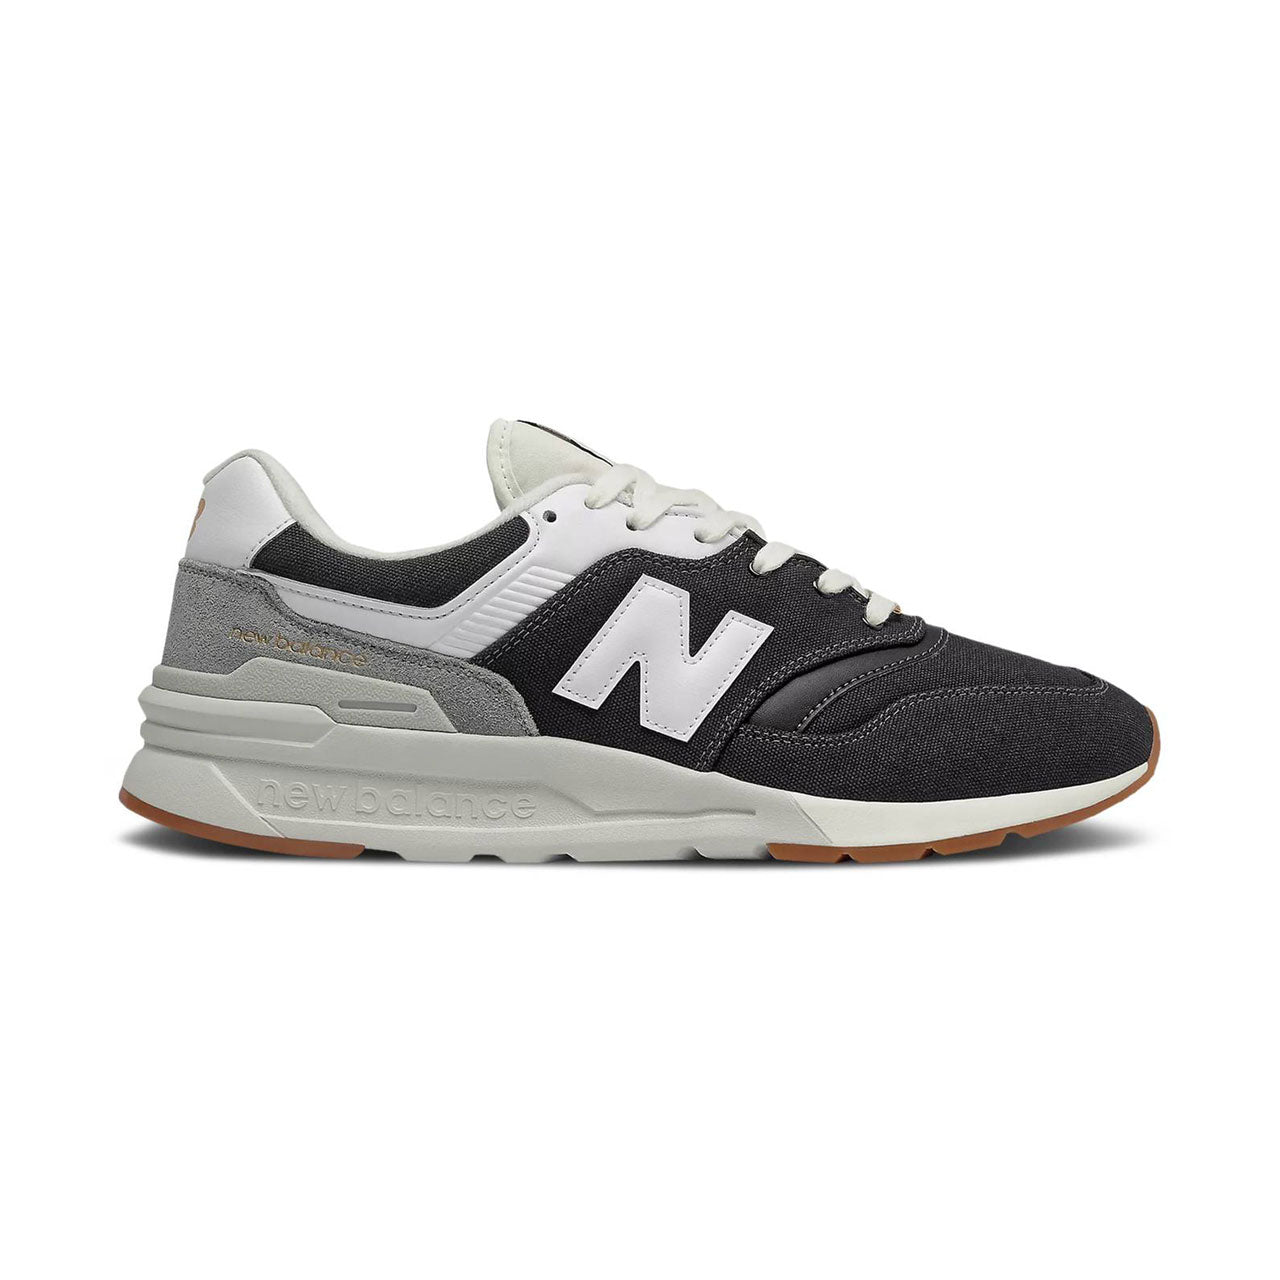 New Balance 997H Black Gold Sneakers